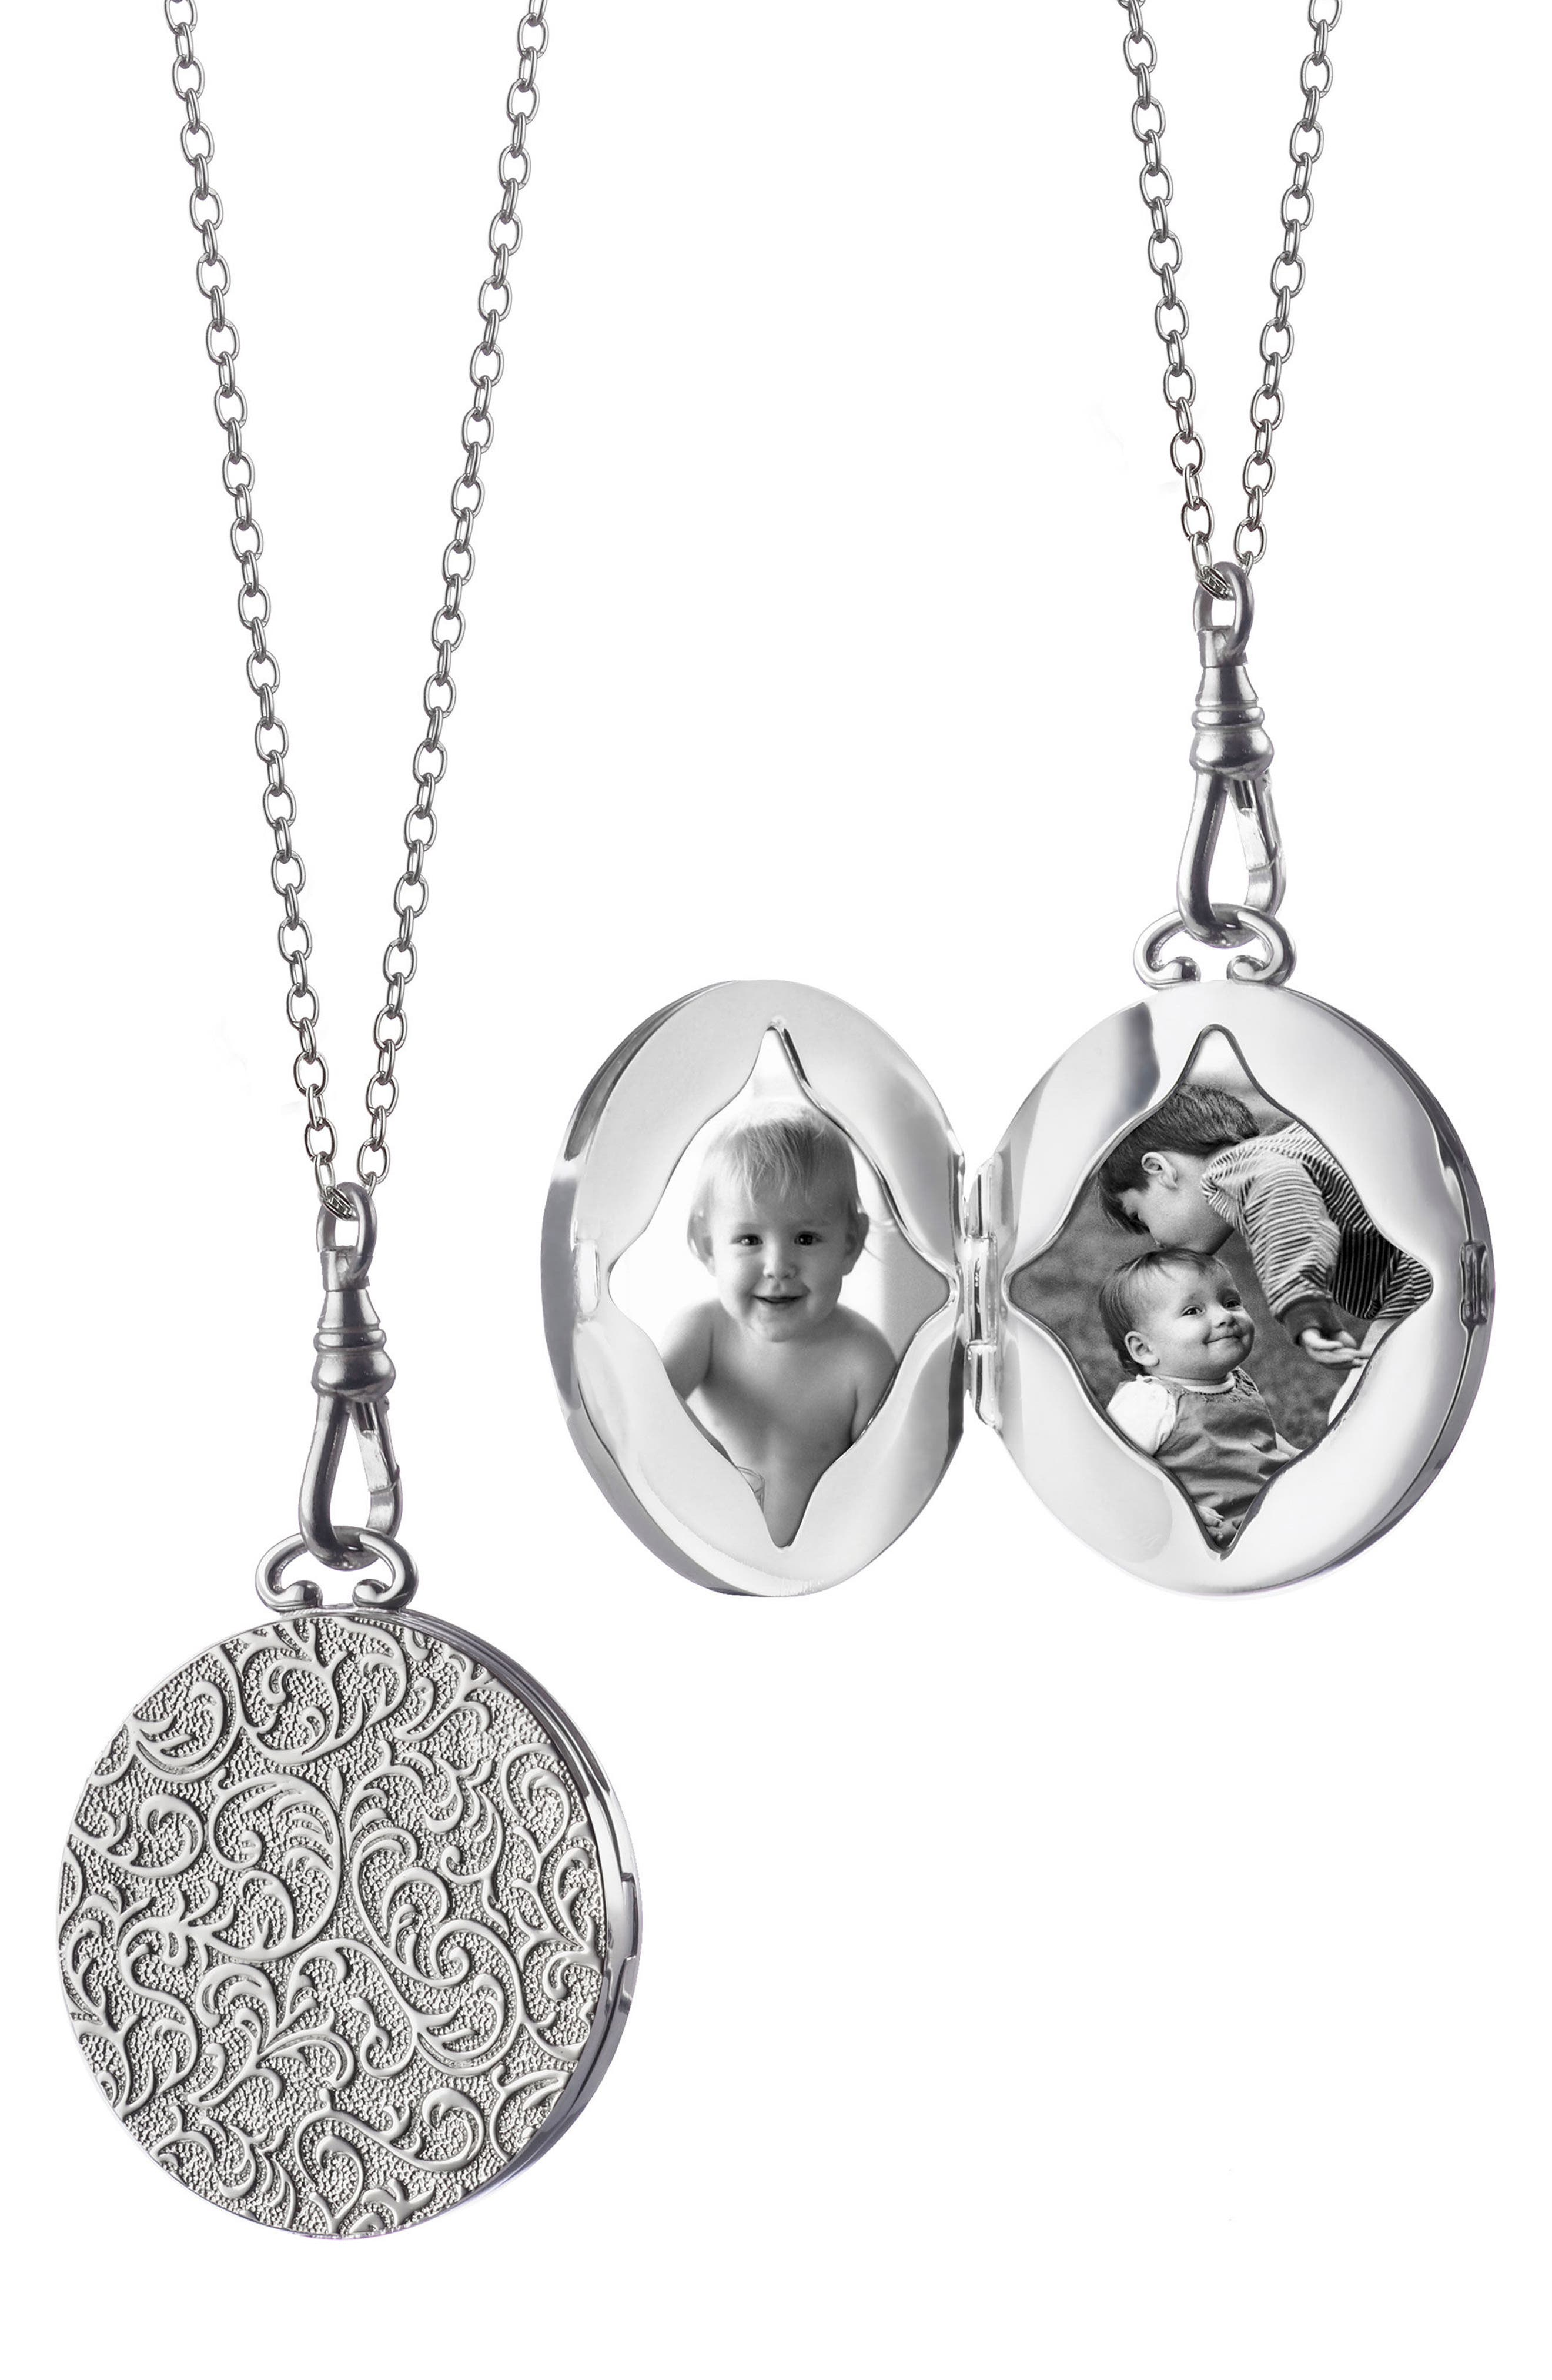 Swirling Vine Round Locket Necklace,                         Main,                         color, Sterling Silver